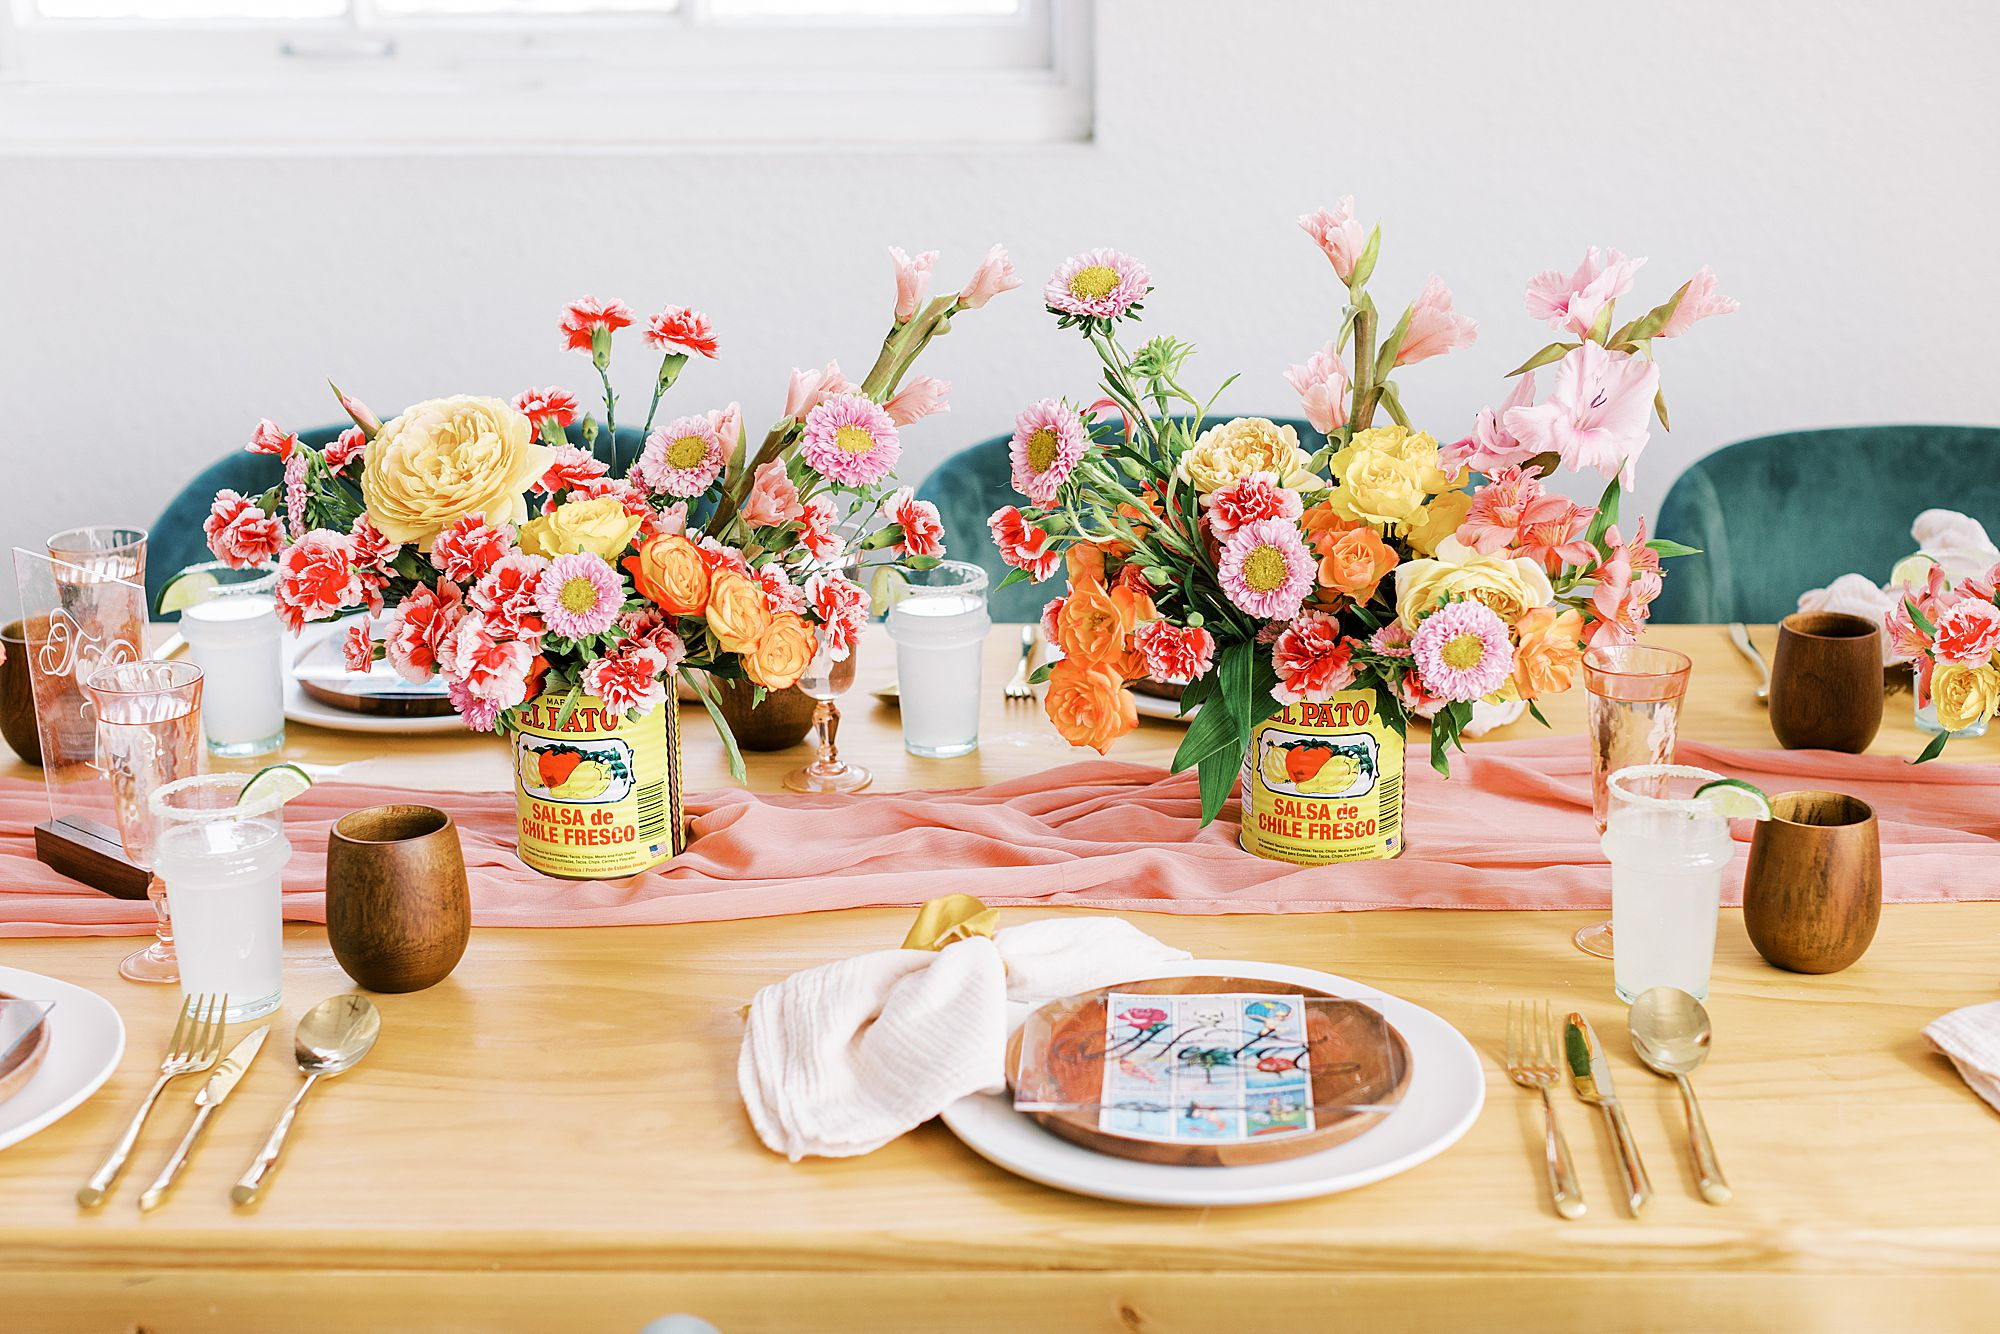 Cinco De Mayo Inspiration for Your FIesta - Party Crush Studio and Ashley Baumgartner_0029.jpg